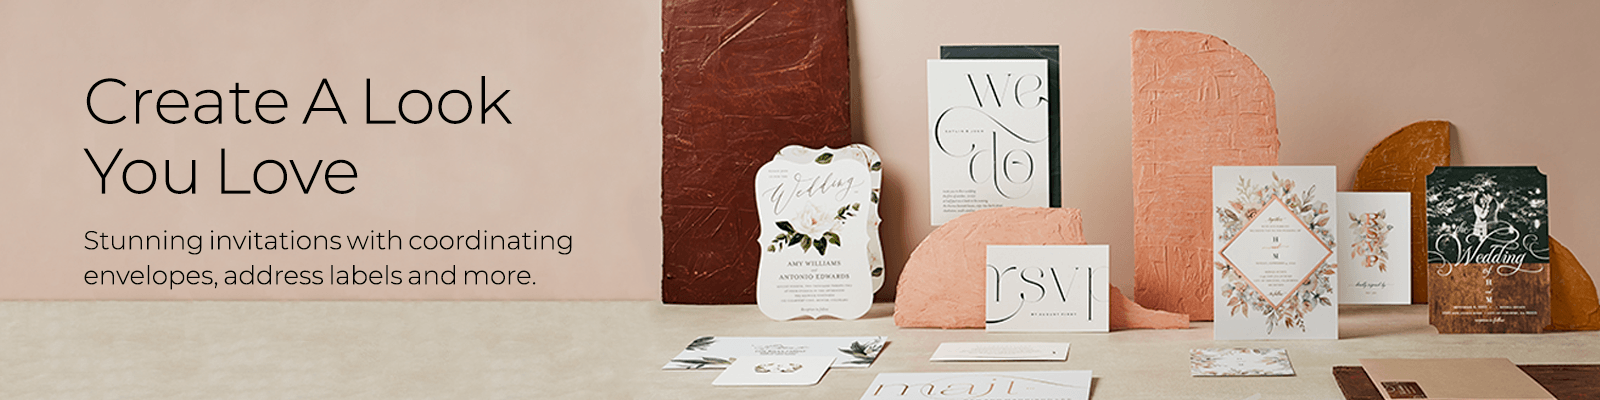 create a look you love, create stunning wedding suites